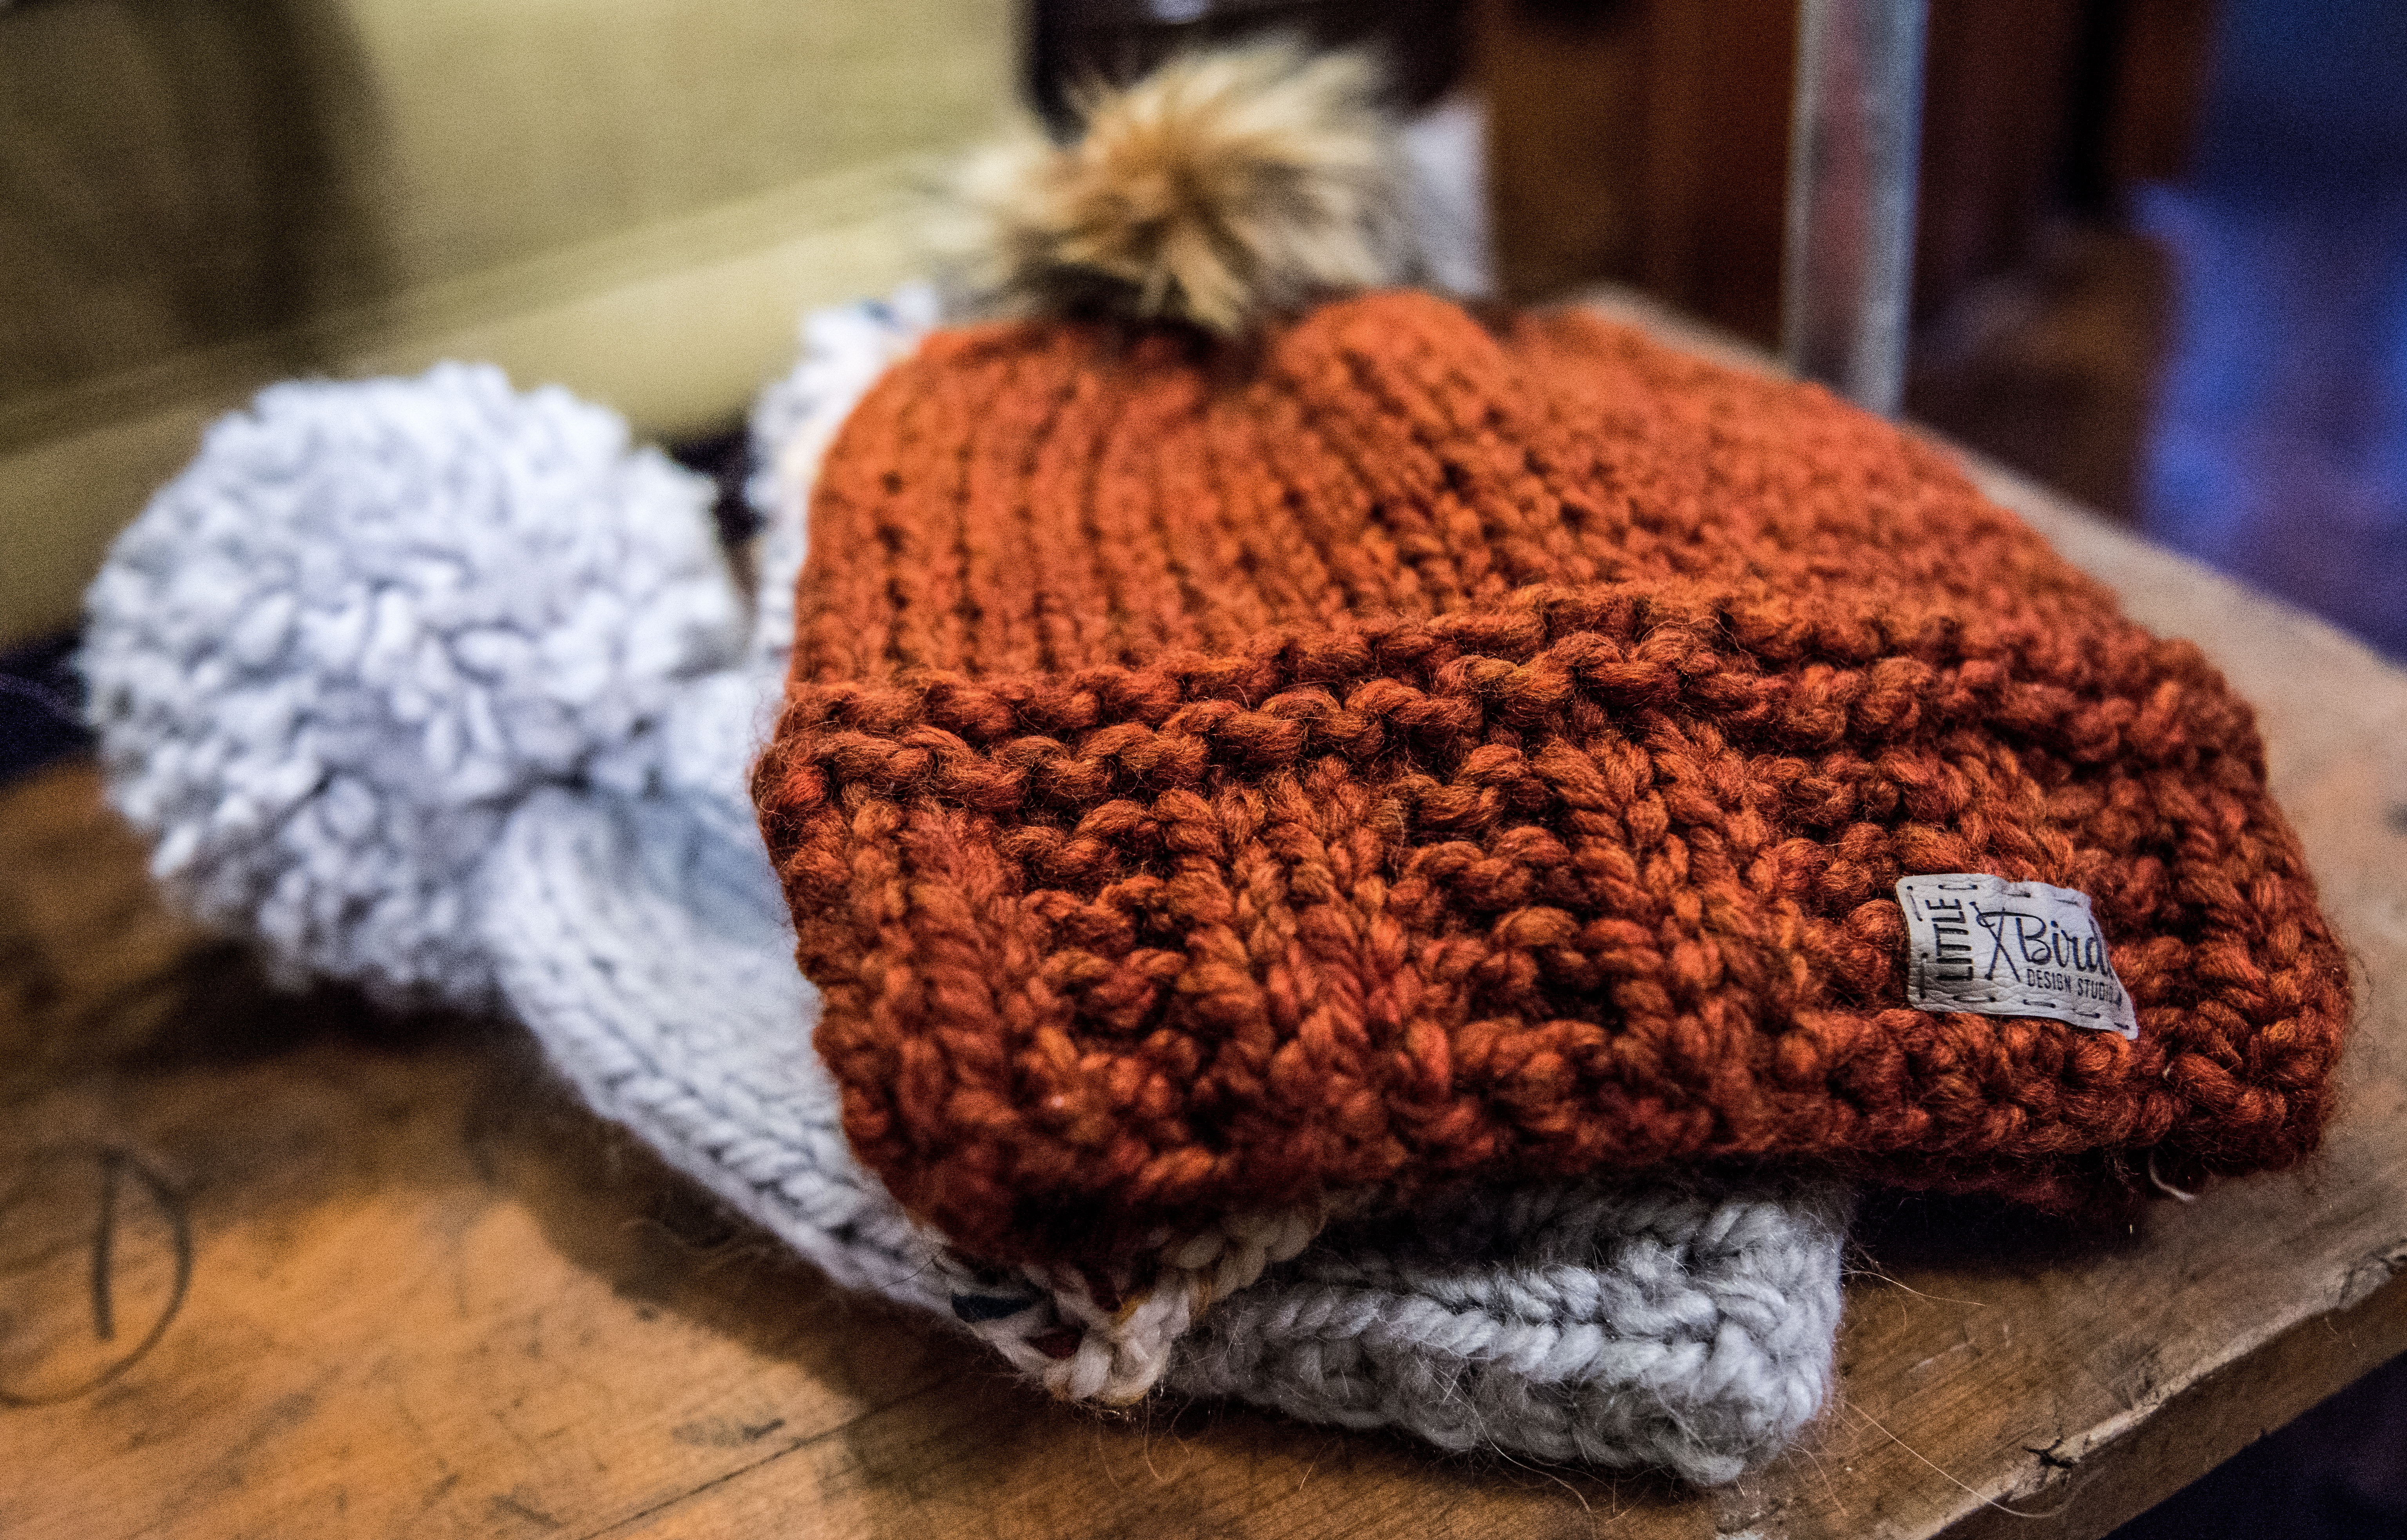 Hats-on-Table